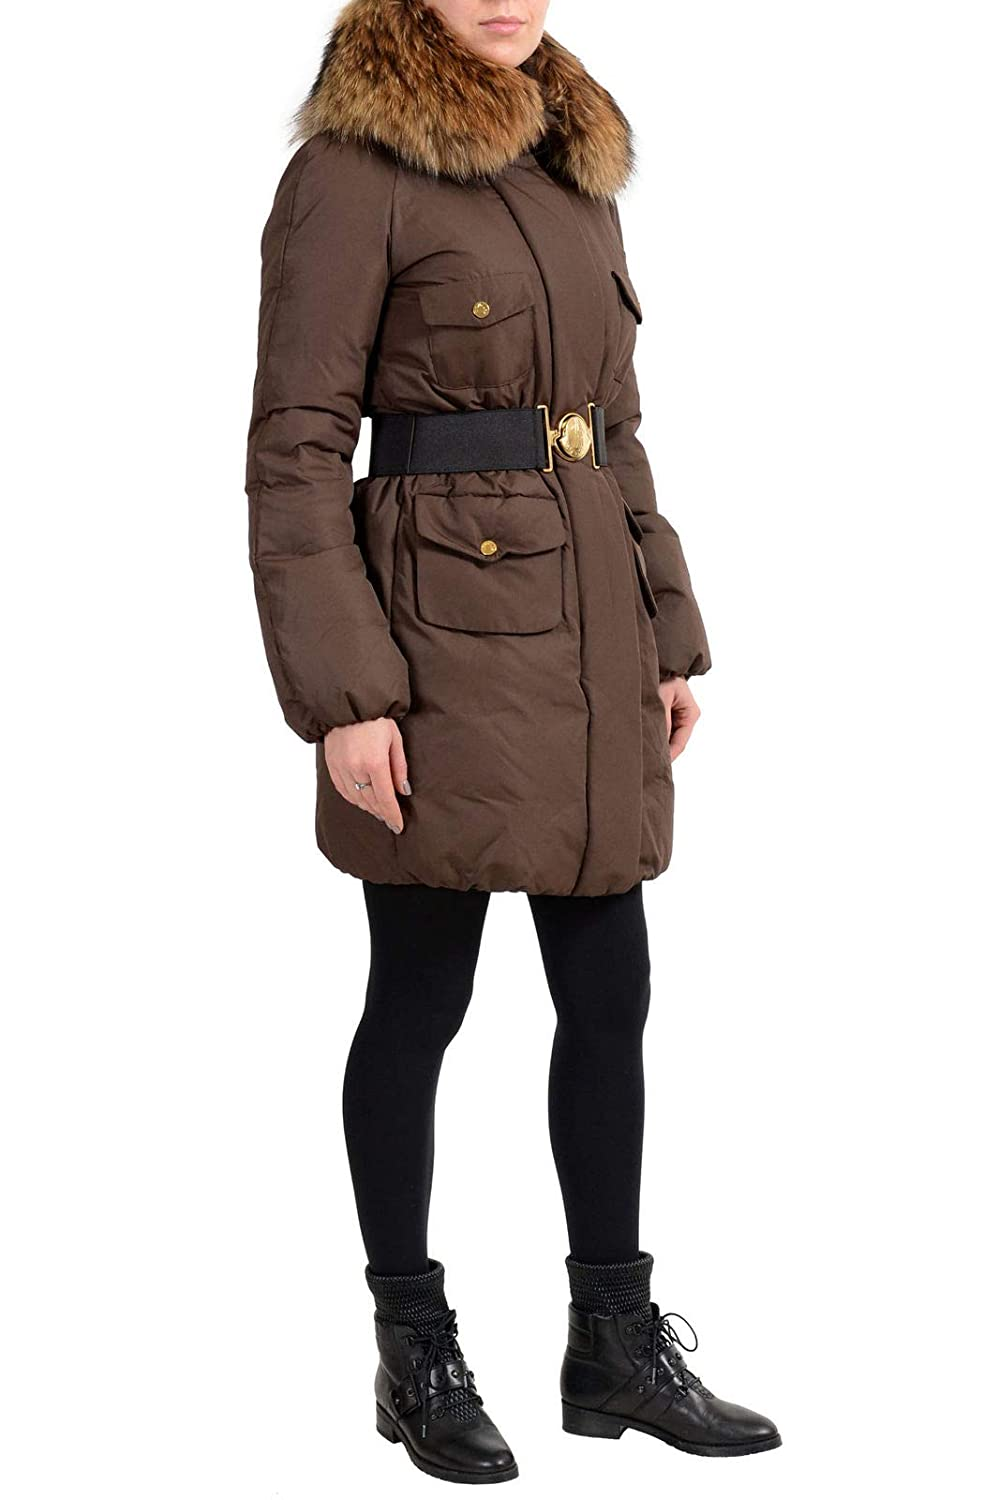 571c7b8a9 Amazon.com  Moncler Women s Brown Down Fur Trimmed Hooded Parka ...